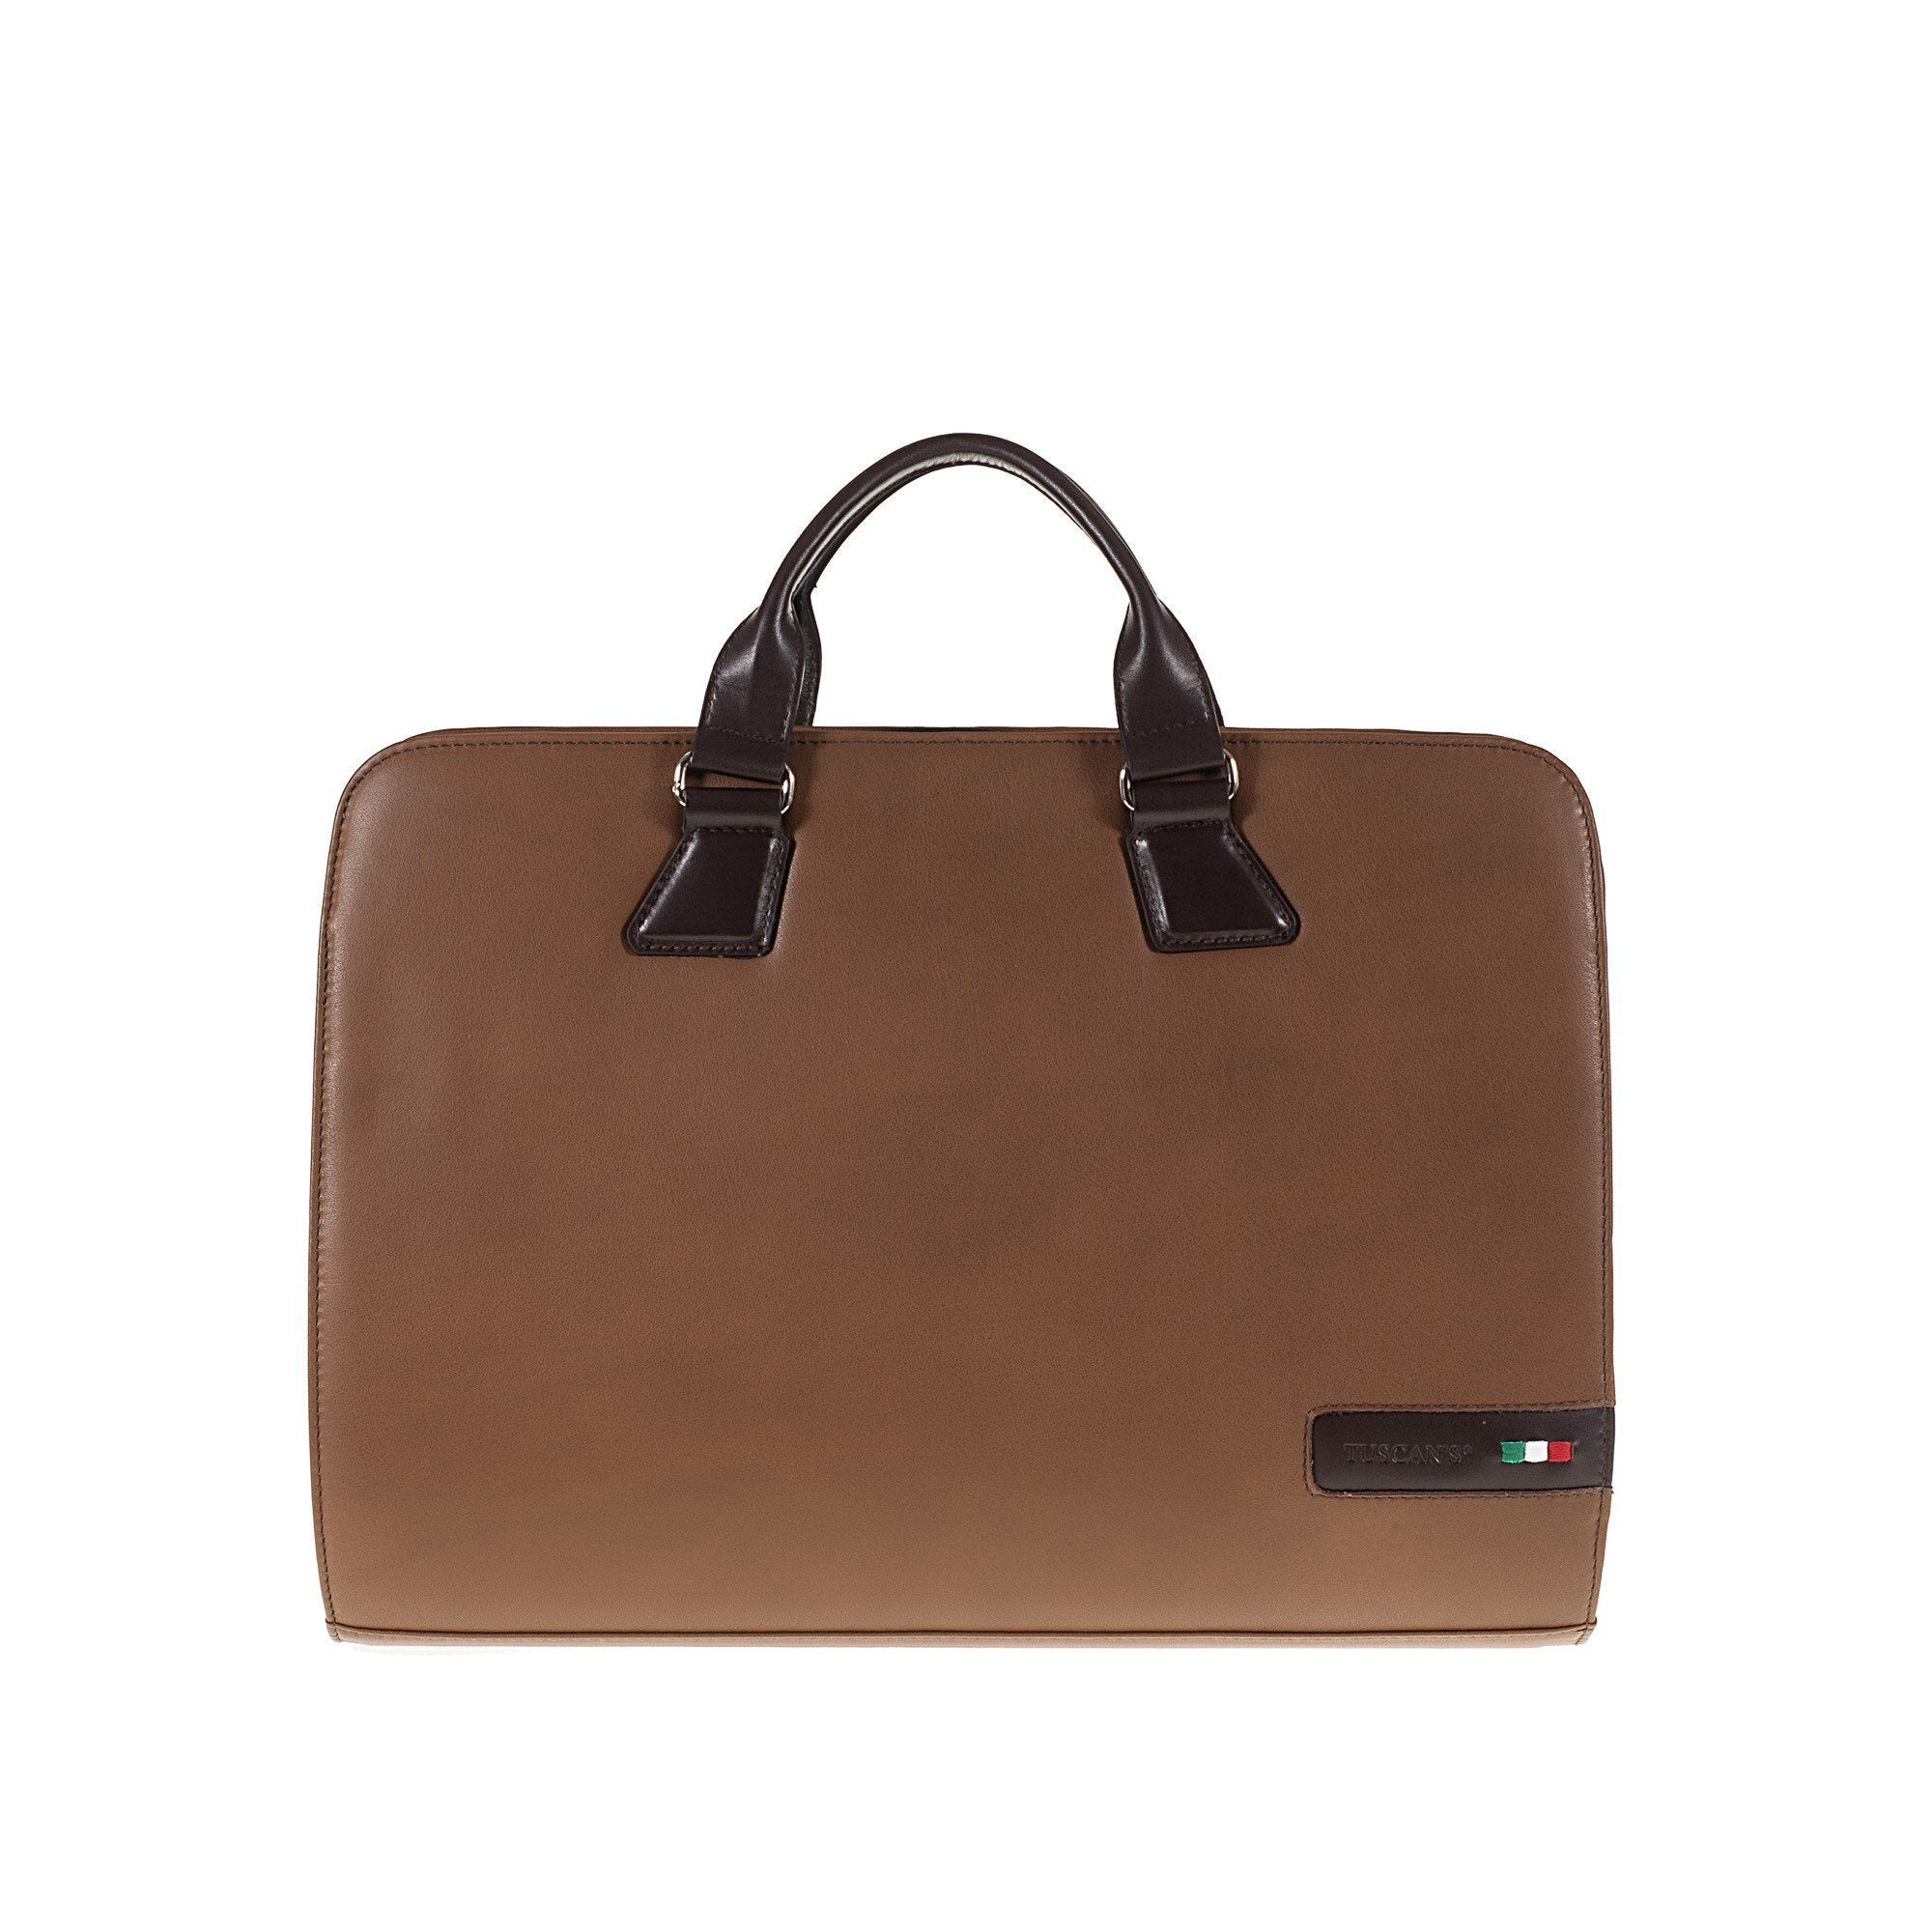 Tuscans 'Spica' Men's Leather Briefcase Briefcase Tuscans Brown/Taupe